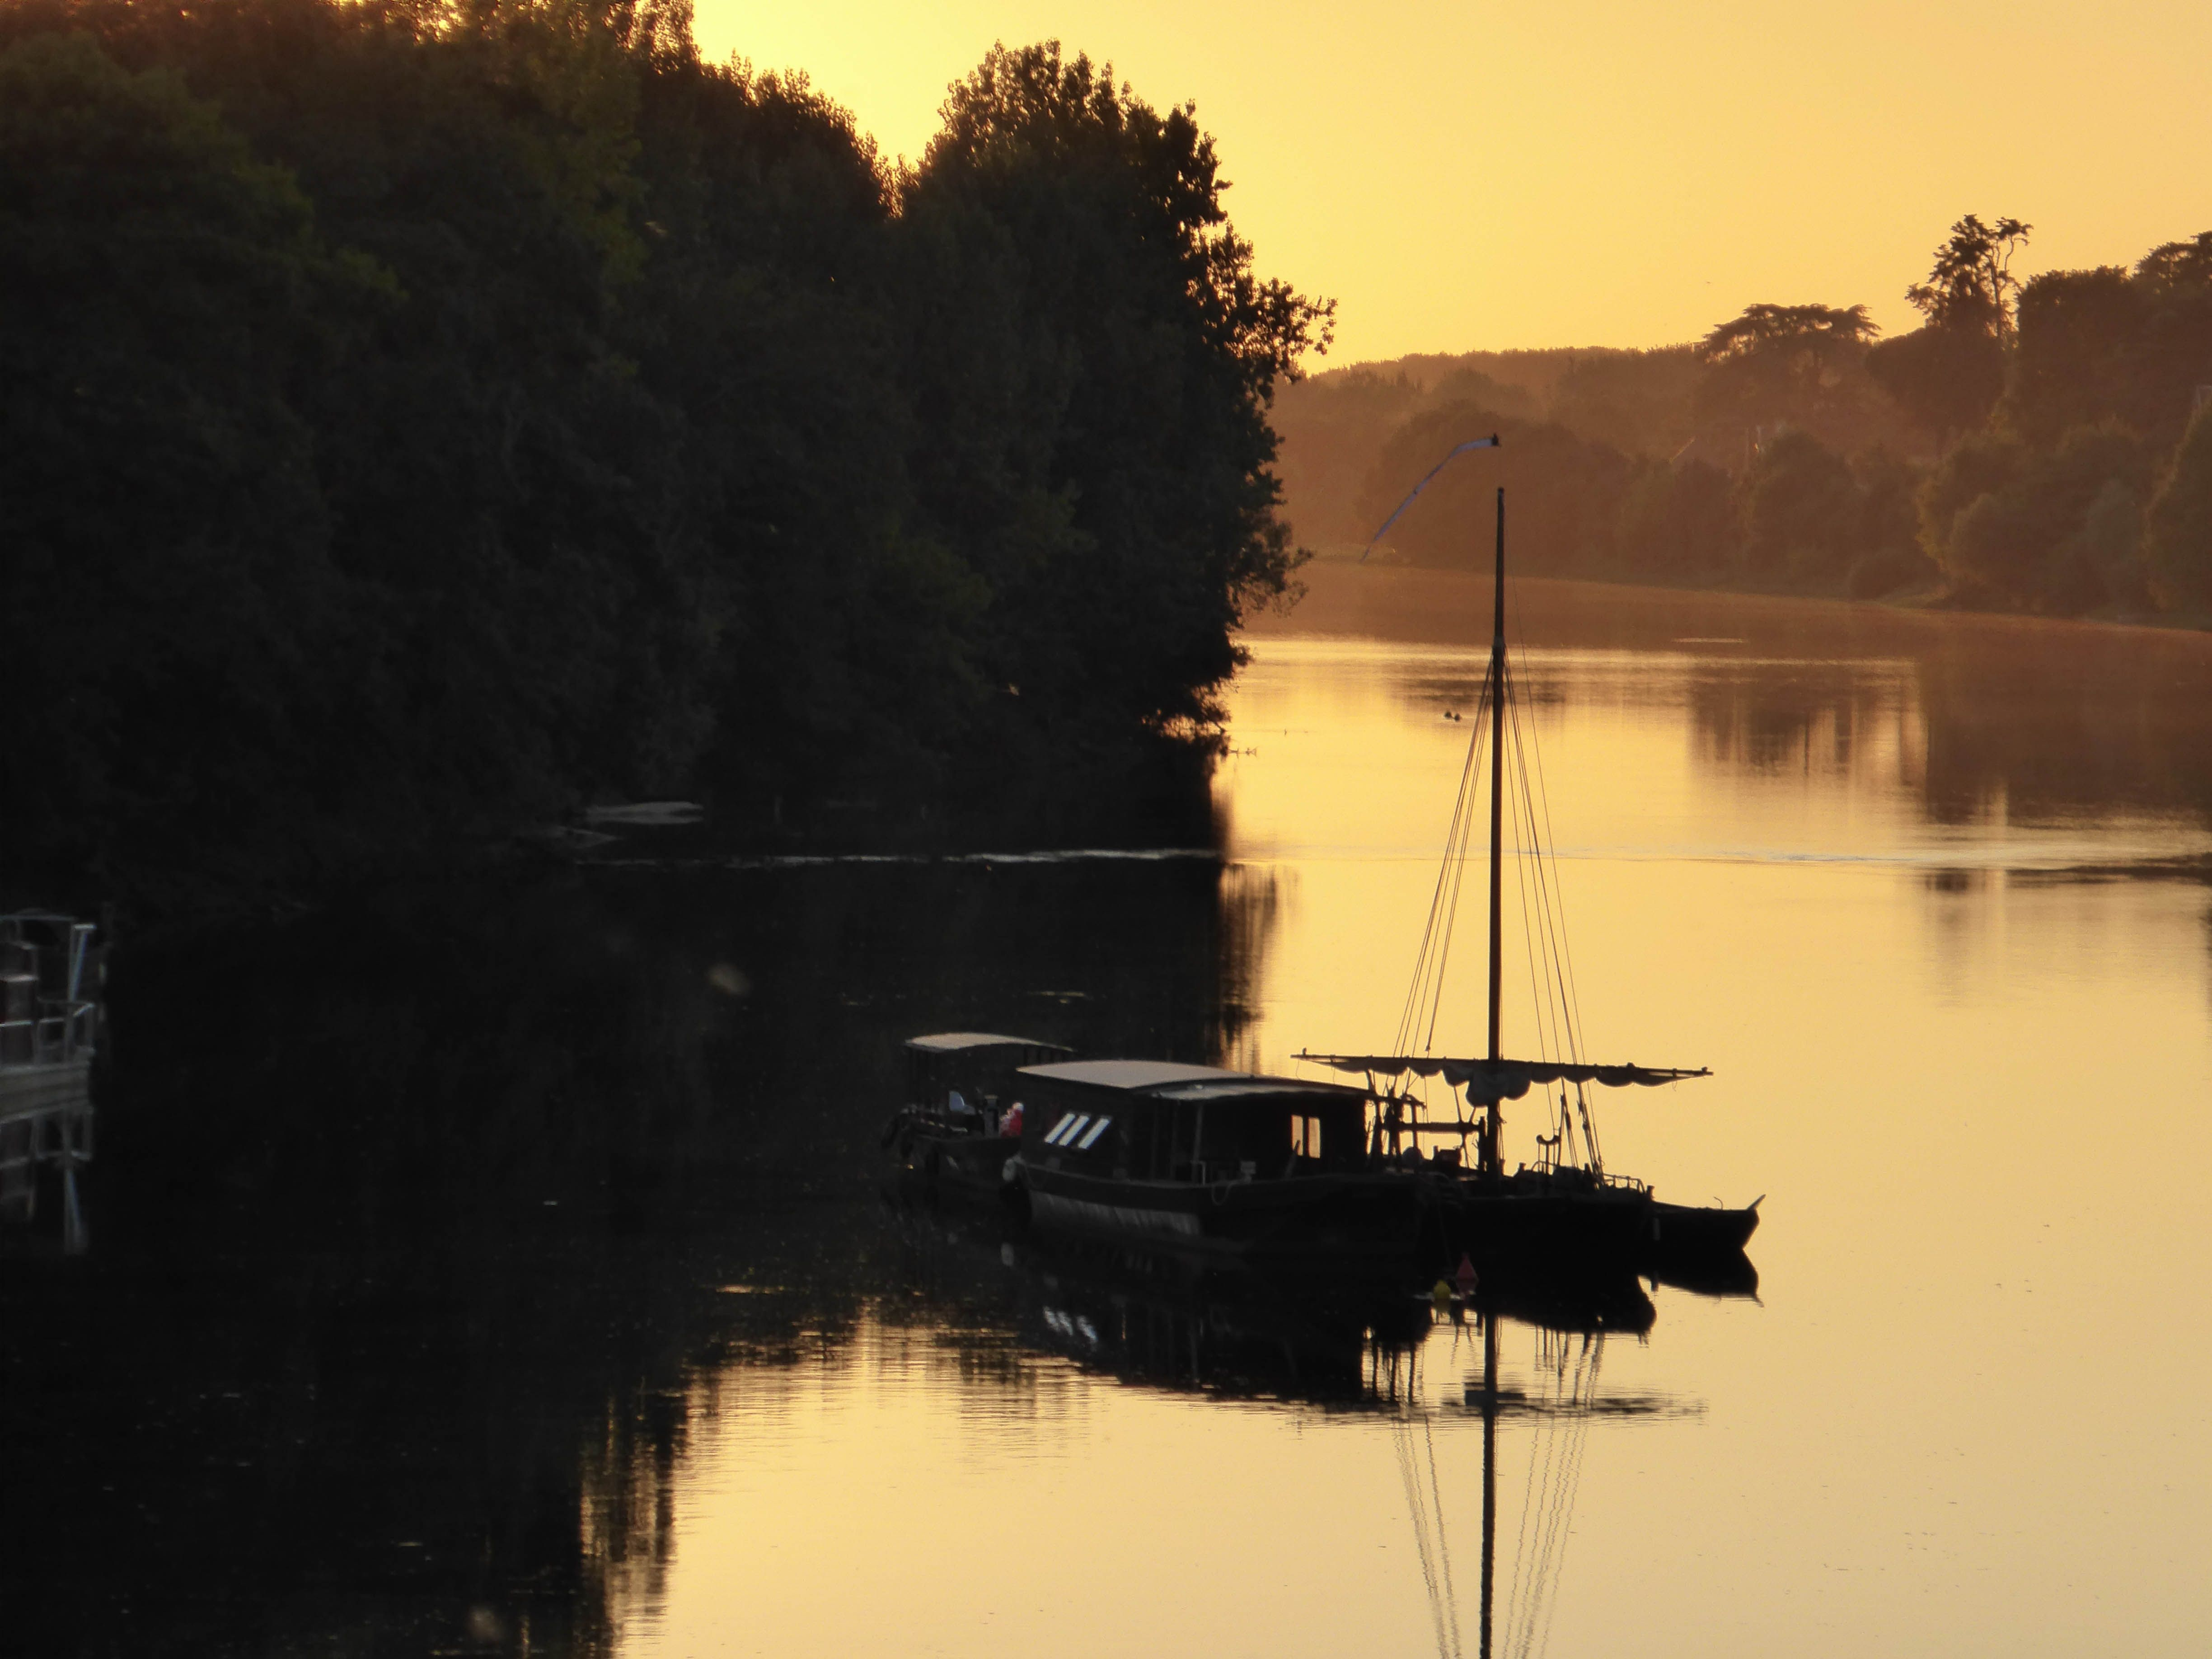 A very atmospheric view of the Vienne River near Chinon in France showing a Gabare or Flat Bottomed Boat at Sunset